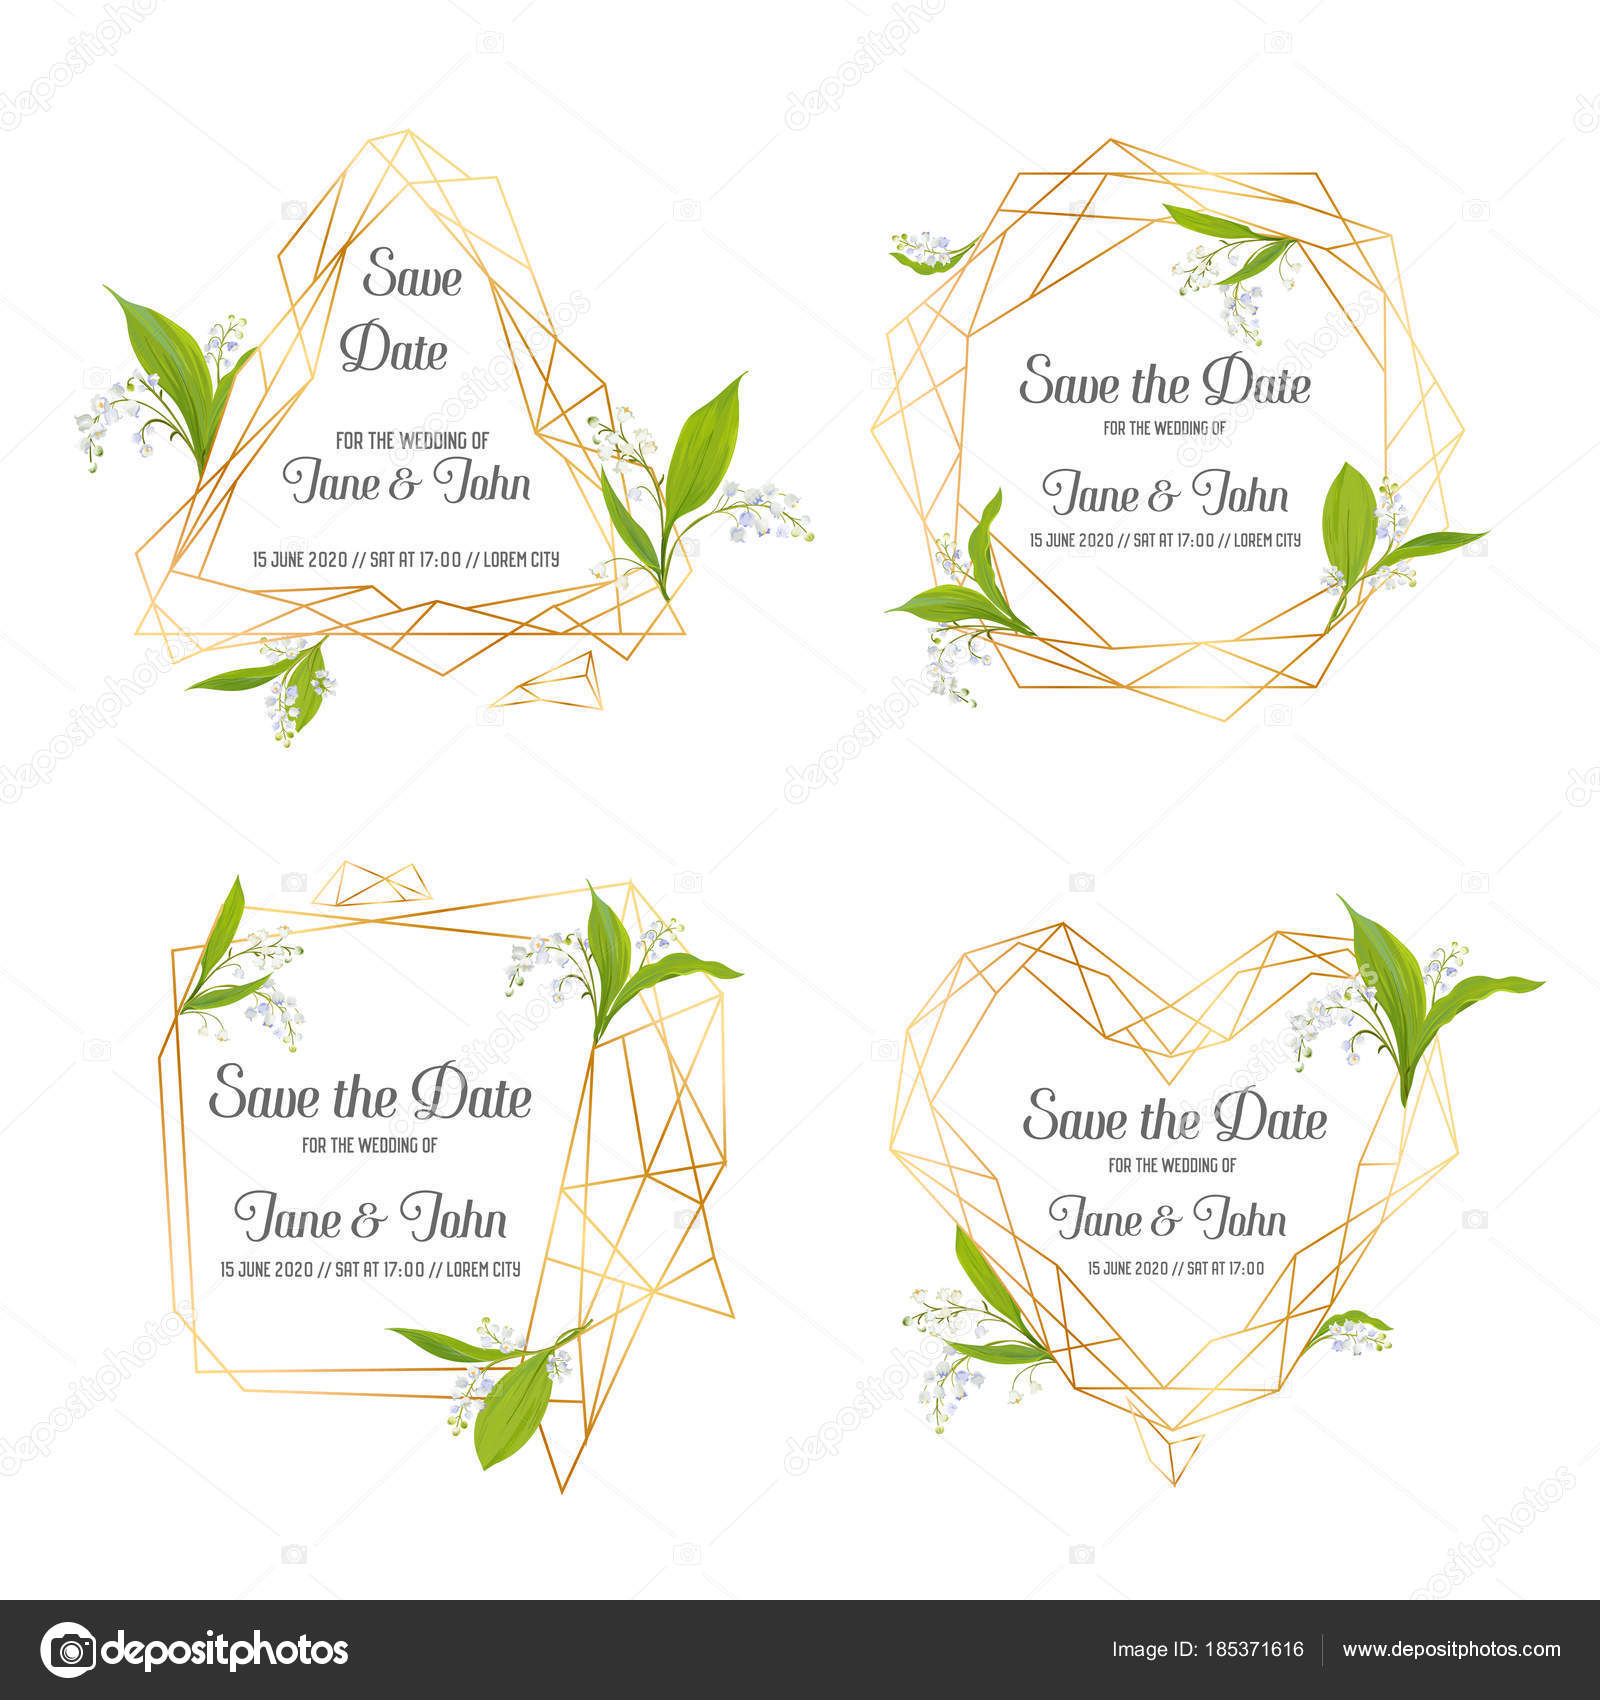 Wedding Invitation Floral Template Set. Save the Date Frames with ...